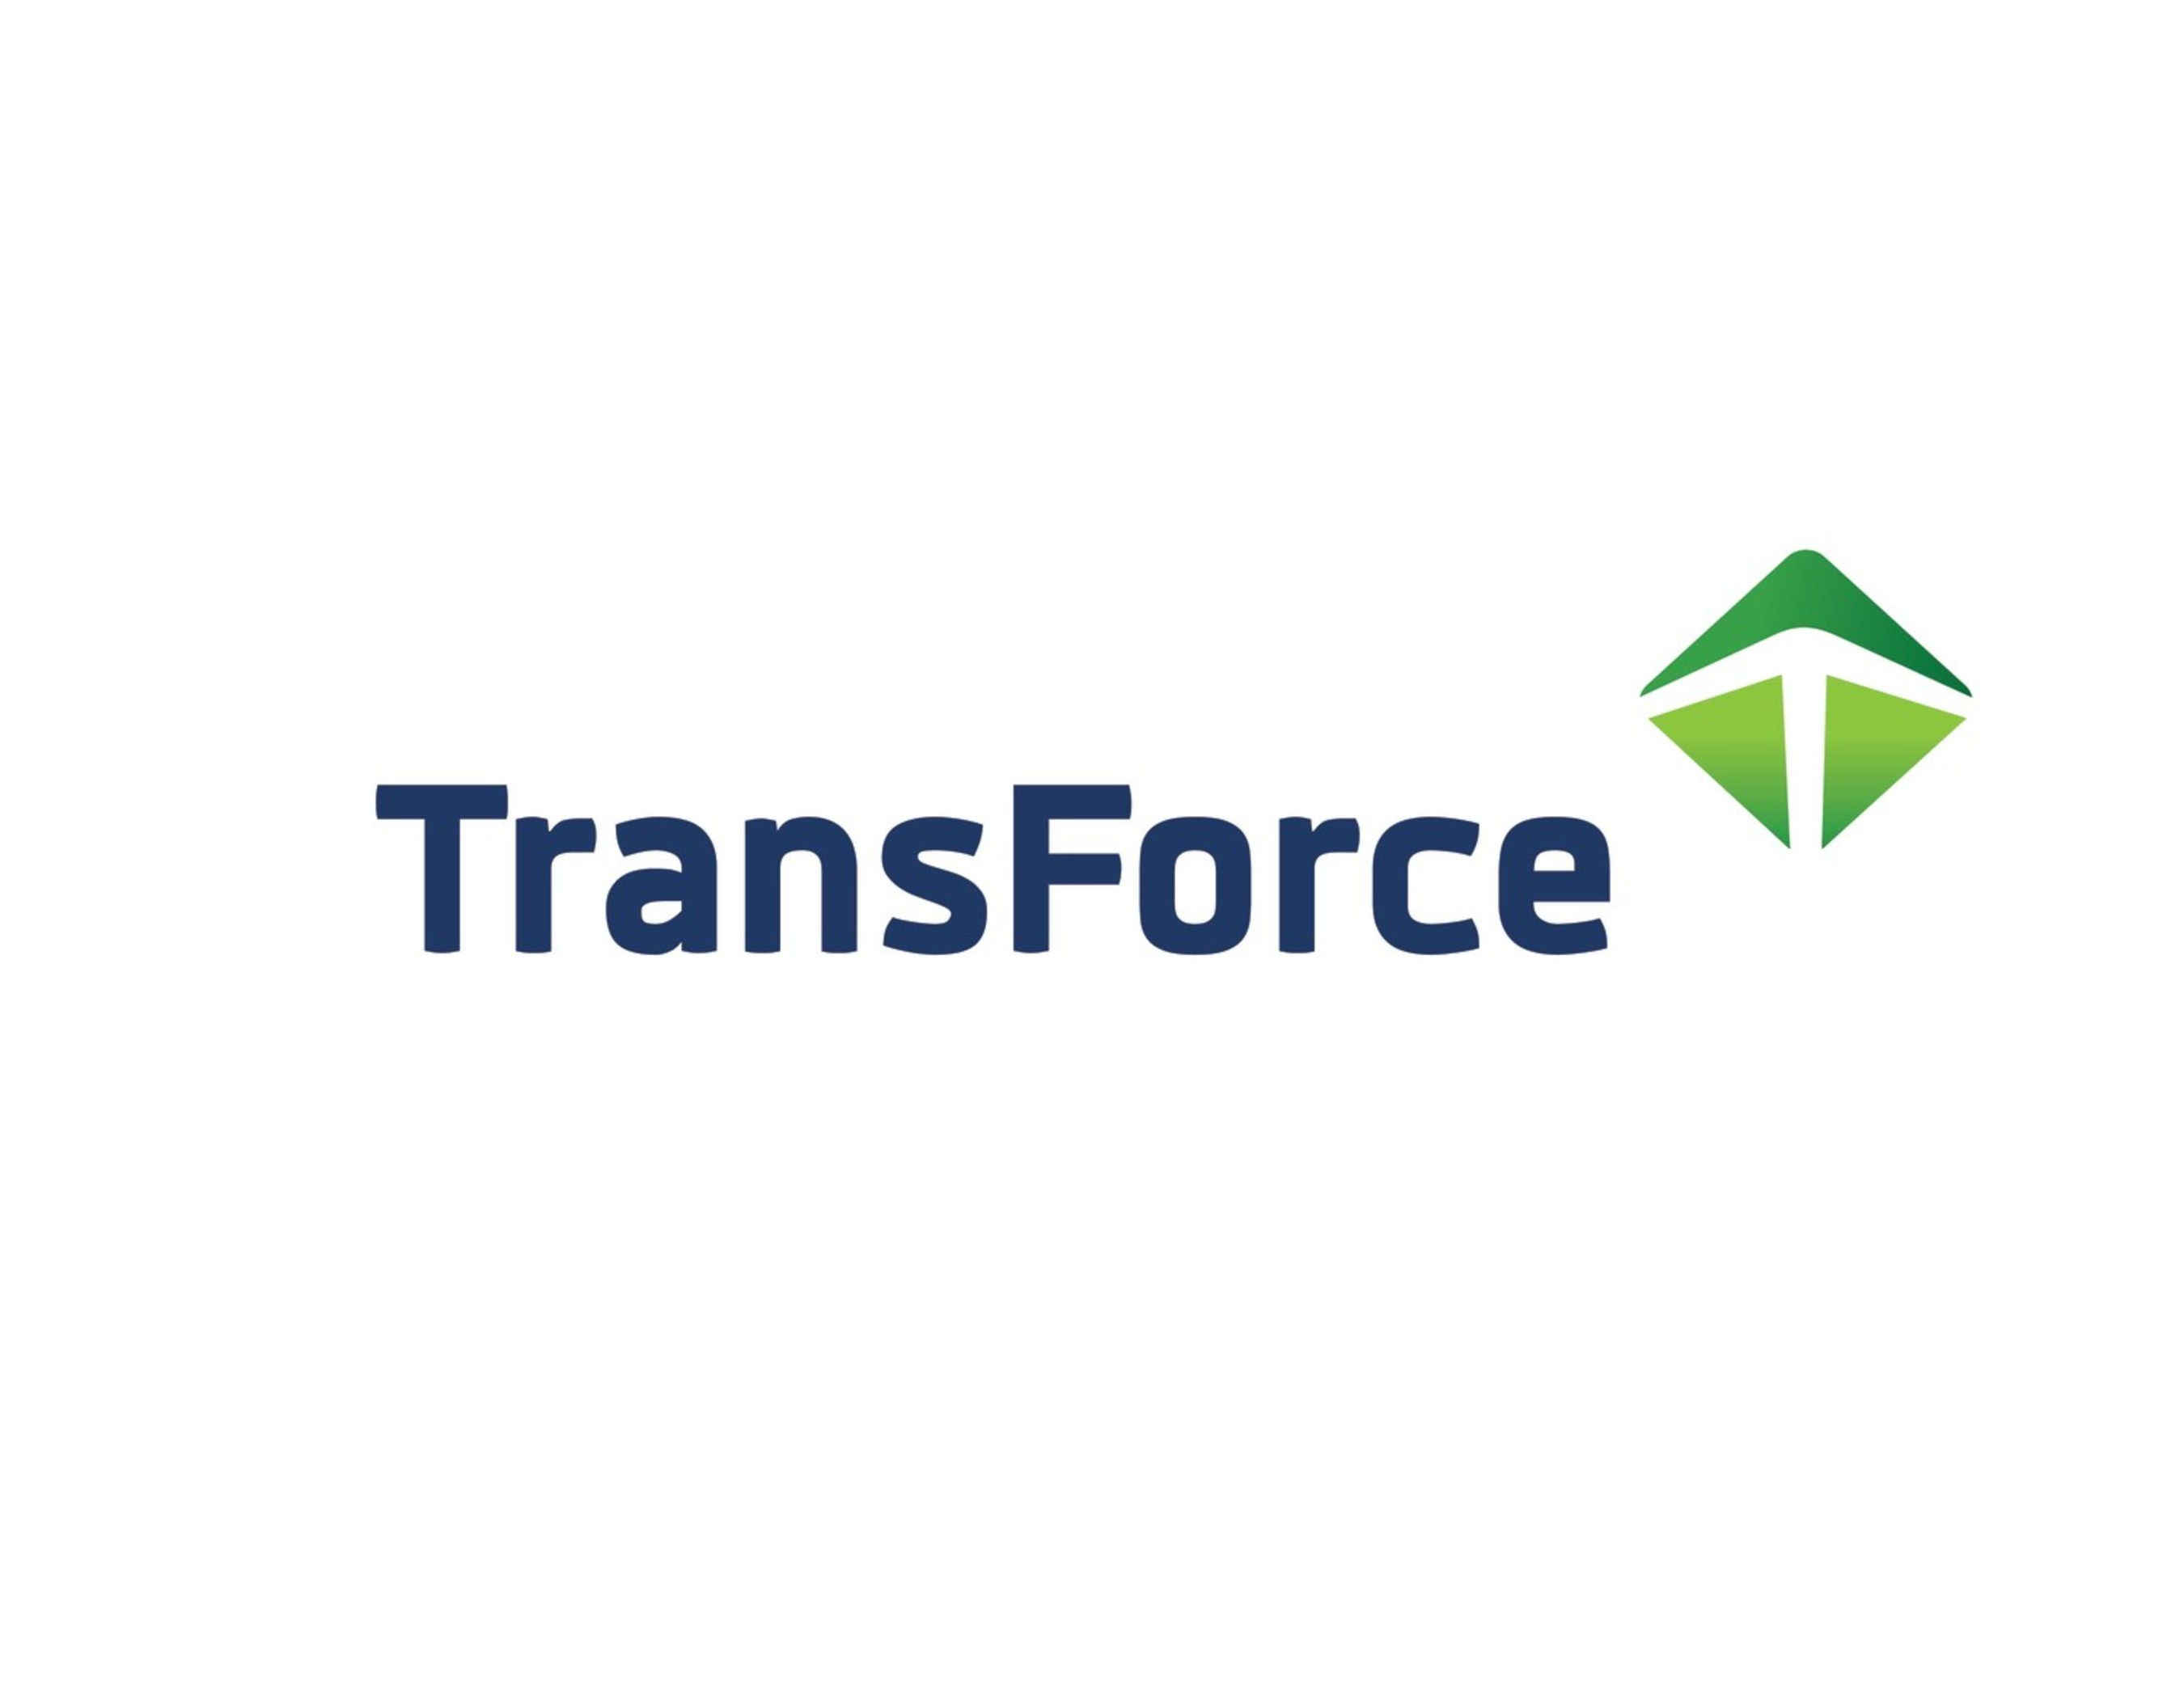 TransForce Acquires Truckdrivingjobs.com Parent Firm